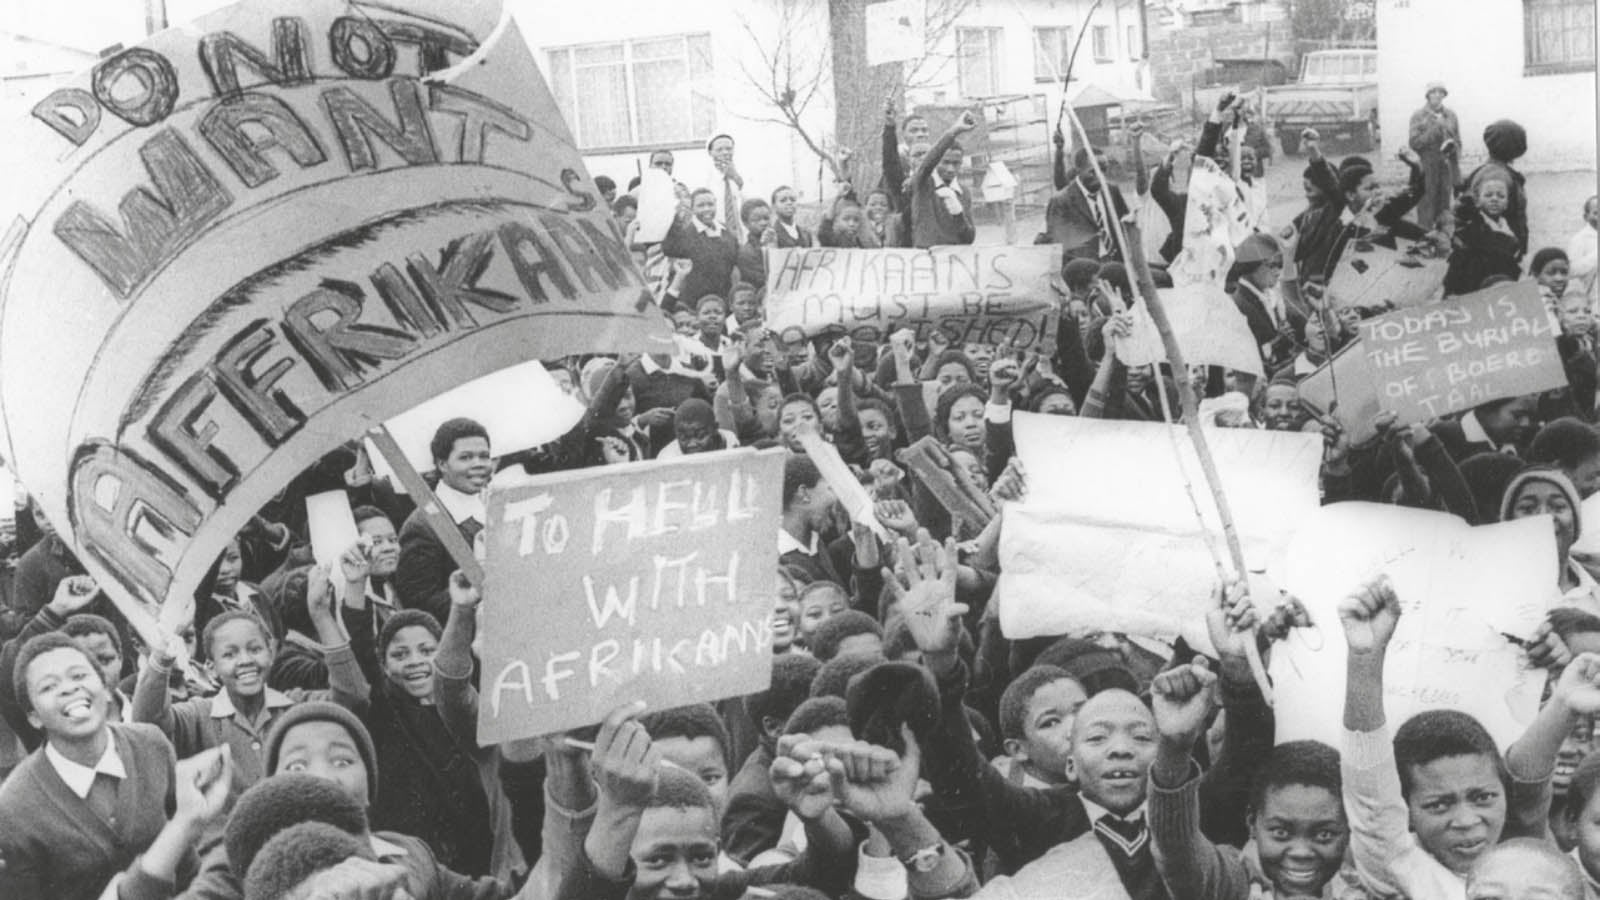 Peaceful young schoolchildren, smiling, singing, marching and displaying a clear message intended for the Department of Bantu Education authorities. This was before the violent intervention of the police.